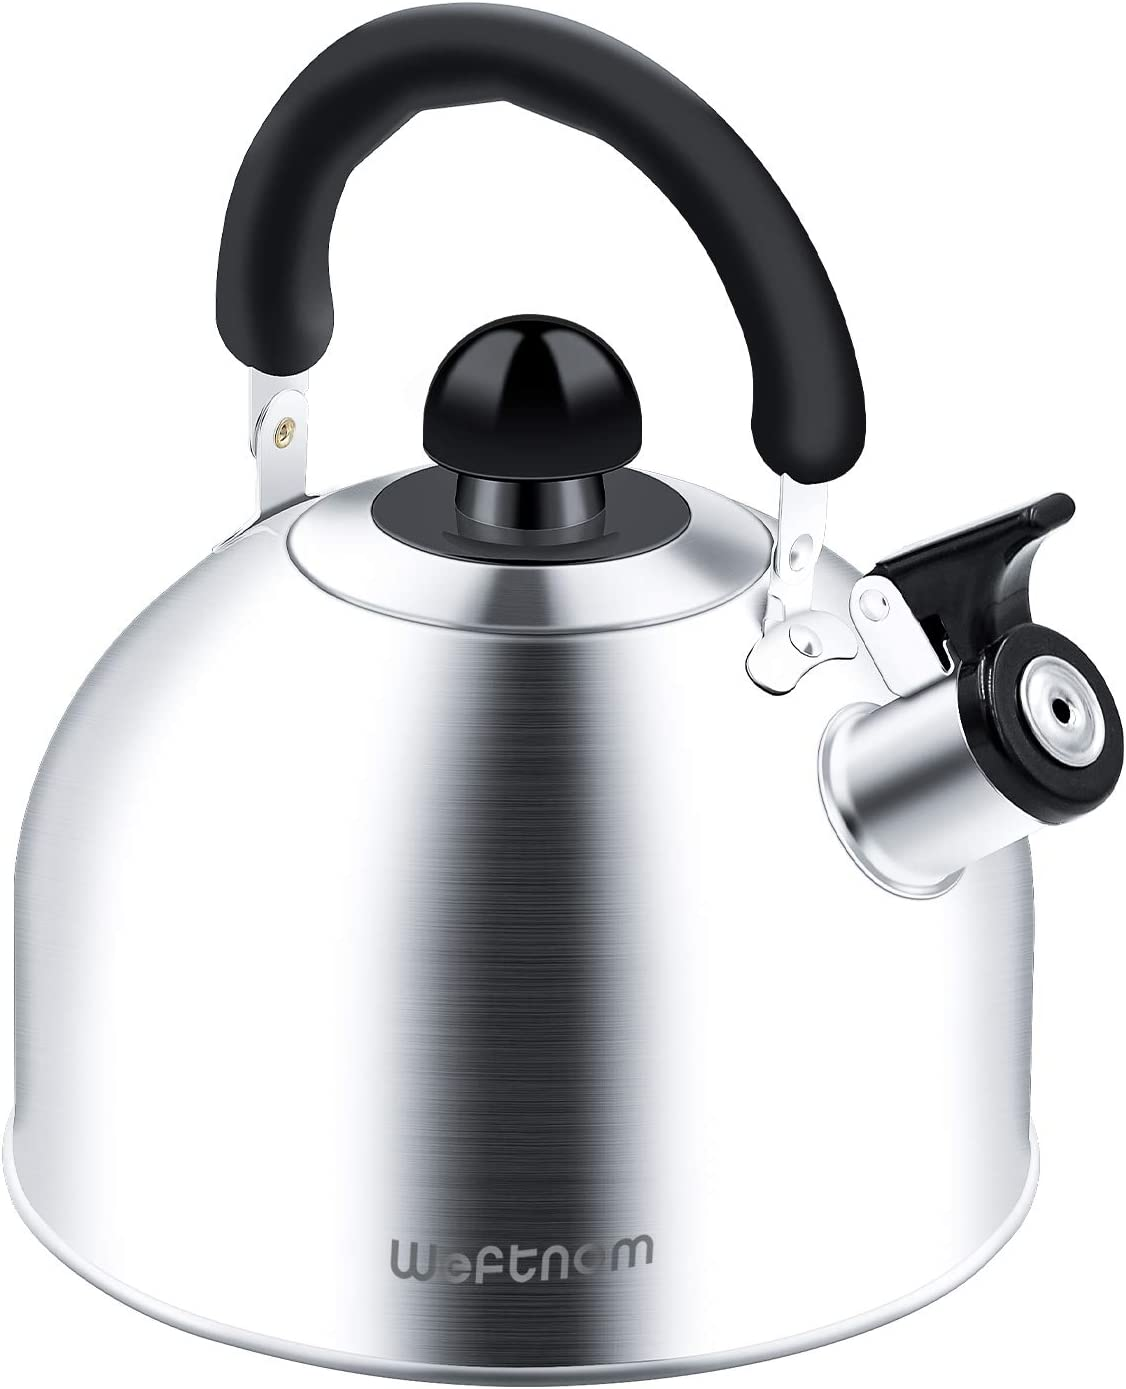 Tea Kettle for Stove Top, Durable Stainless Steel Whistling Tea Kettle, Tea Pot with Ergonomic Handle, 2.3Quart Anit-scald Tea Kettle Whistling Finish for All Stoves